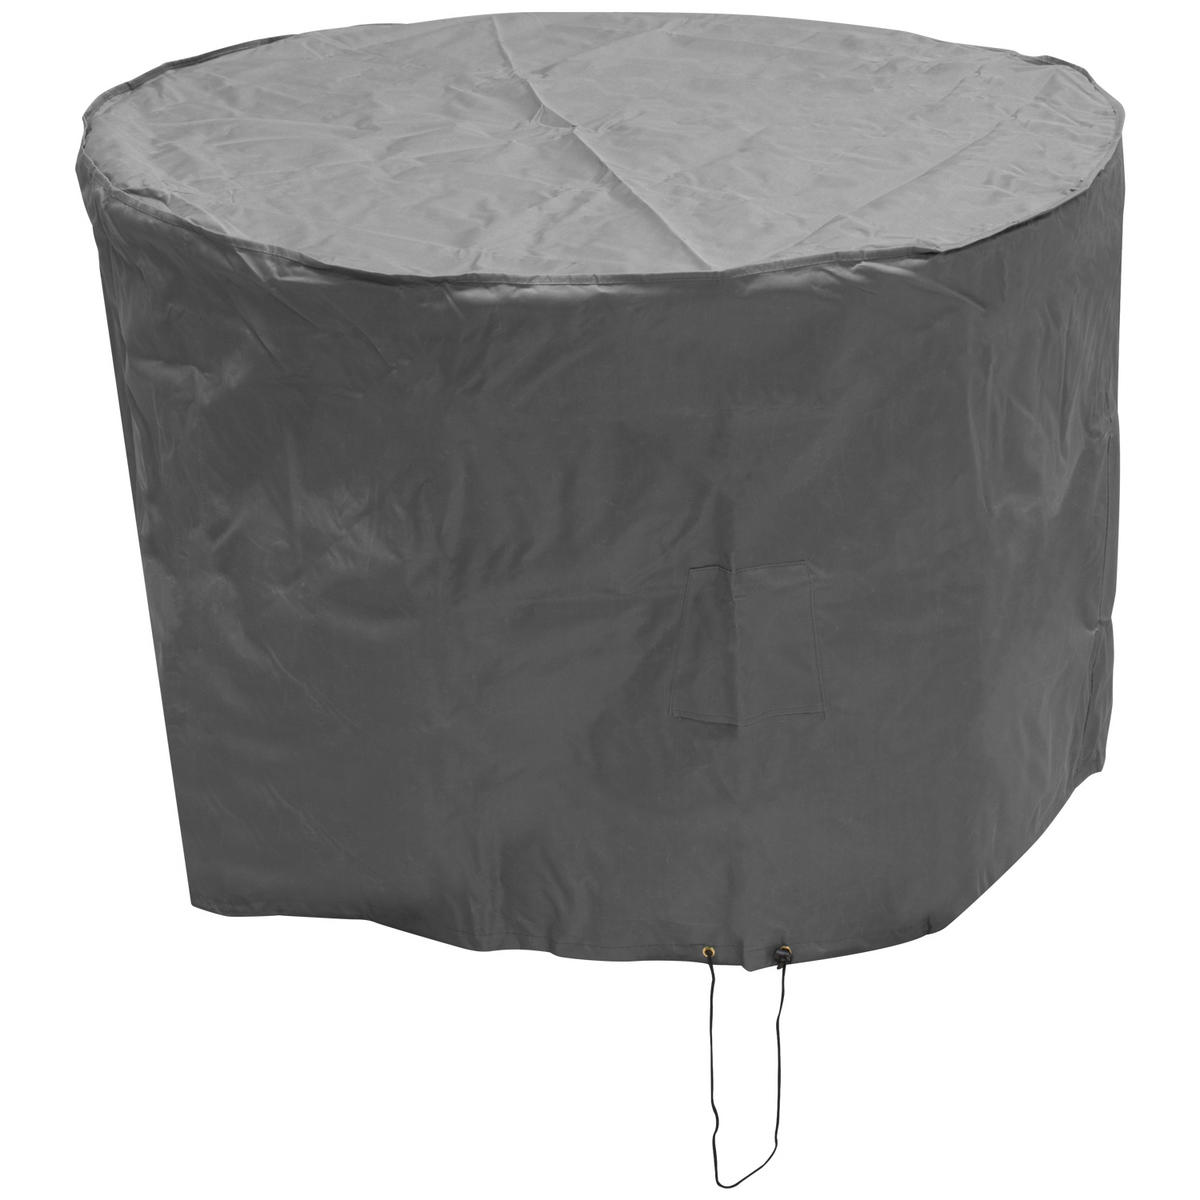 Oxbridge small round patio set cover grey covers for Oxbridge outdoor furniture covers